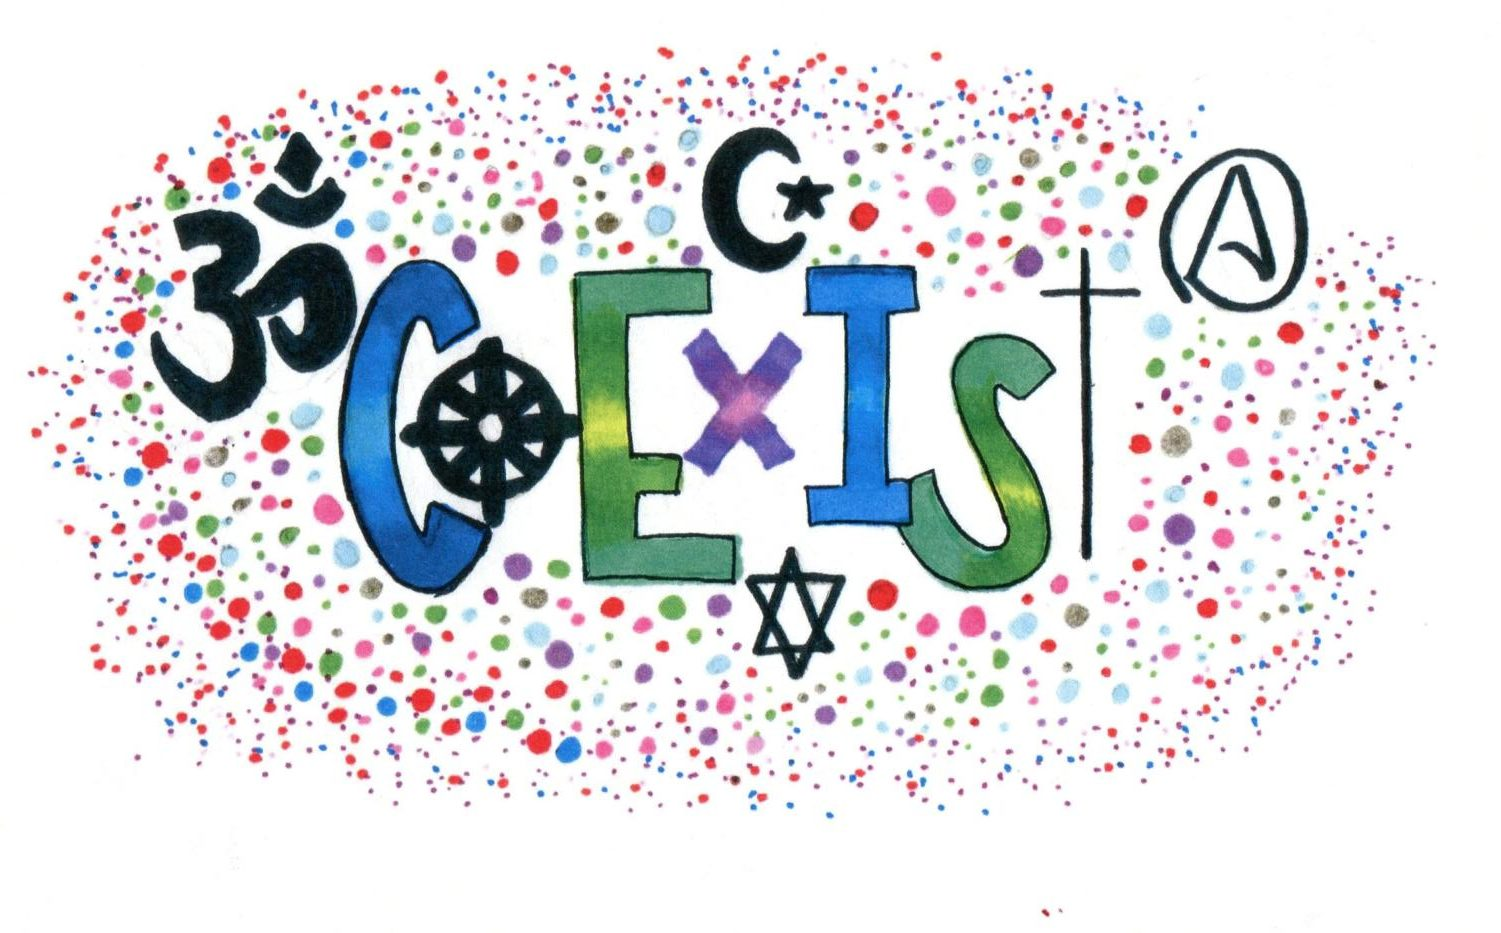 Coexist is a popular word to connect religions in unity and communicate that different beliefs can live side by side in peace.